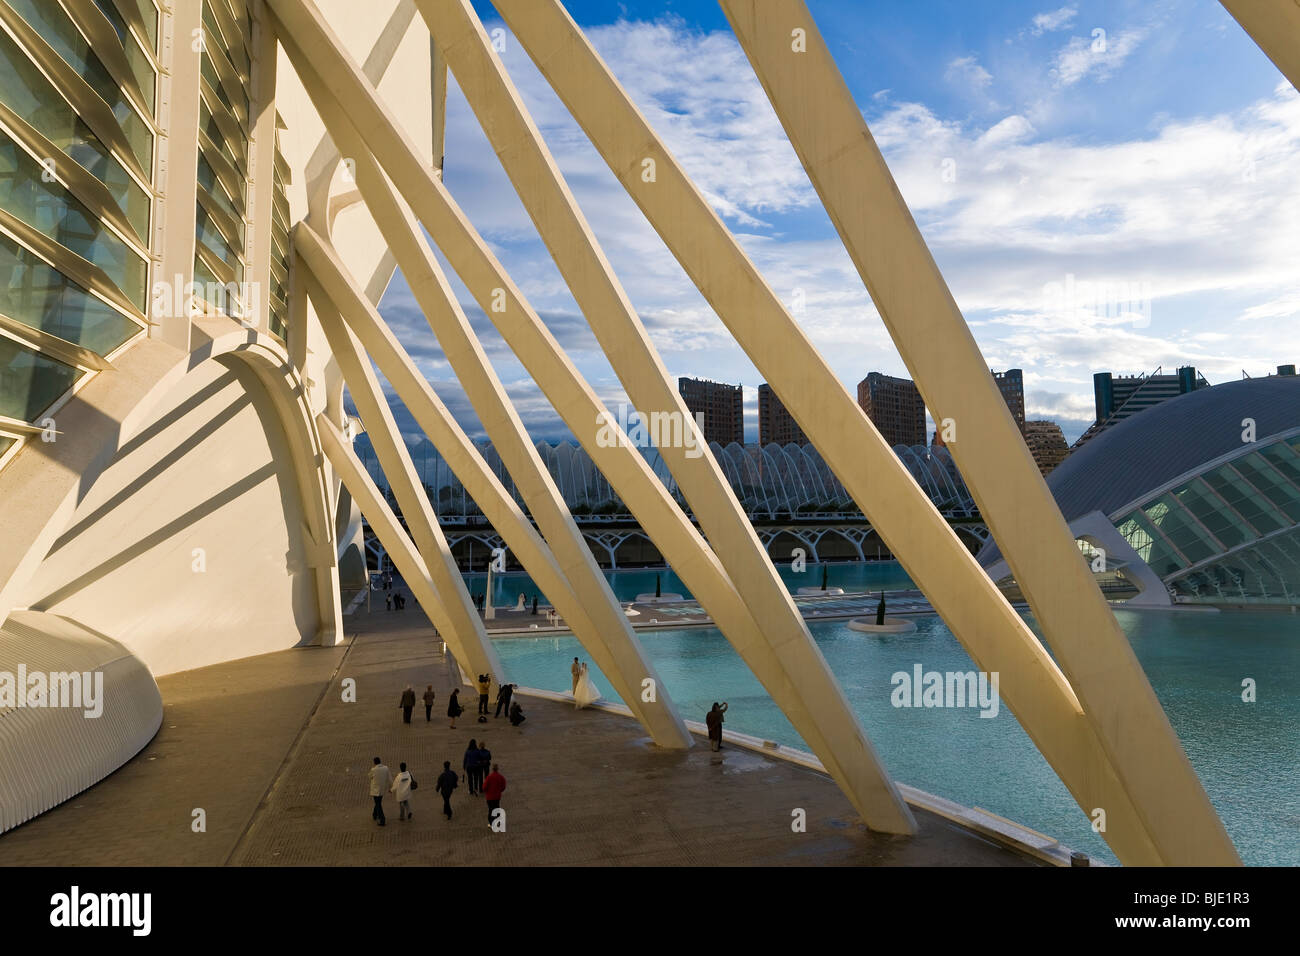 The City of Arts and Sciences building Valencia Spain - Stock Image